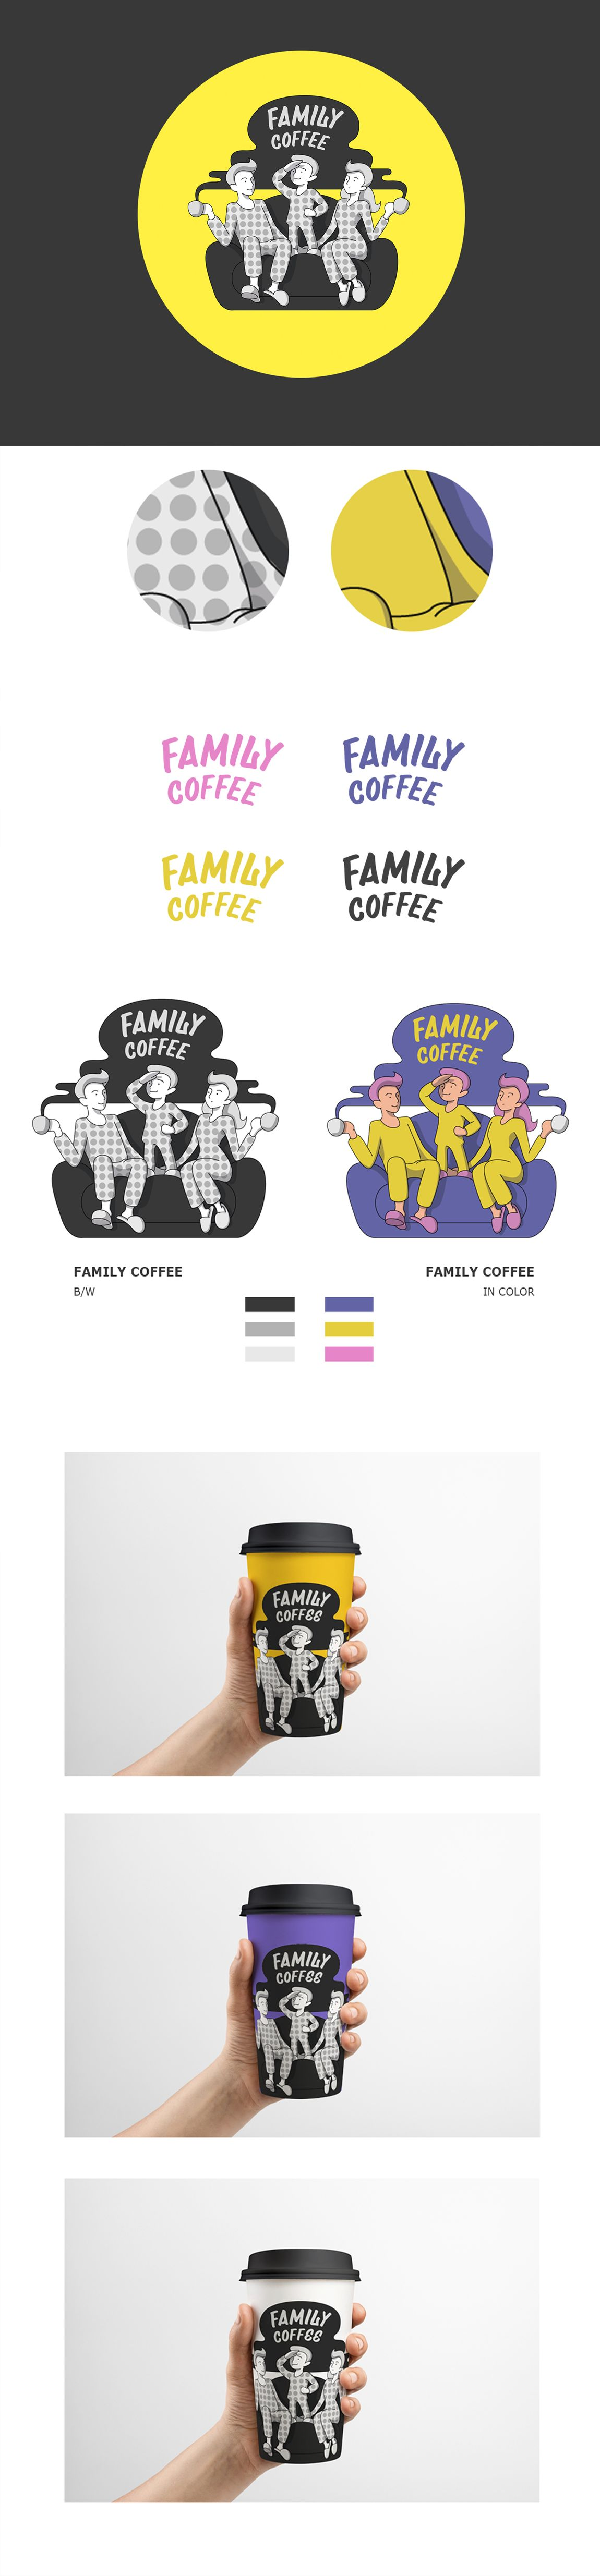 Family coffee